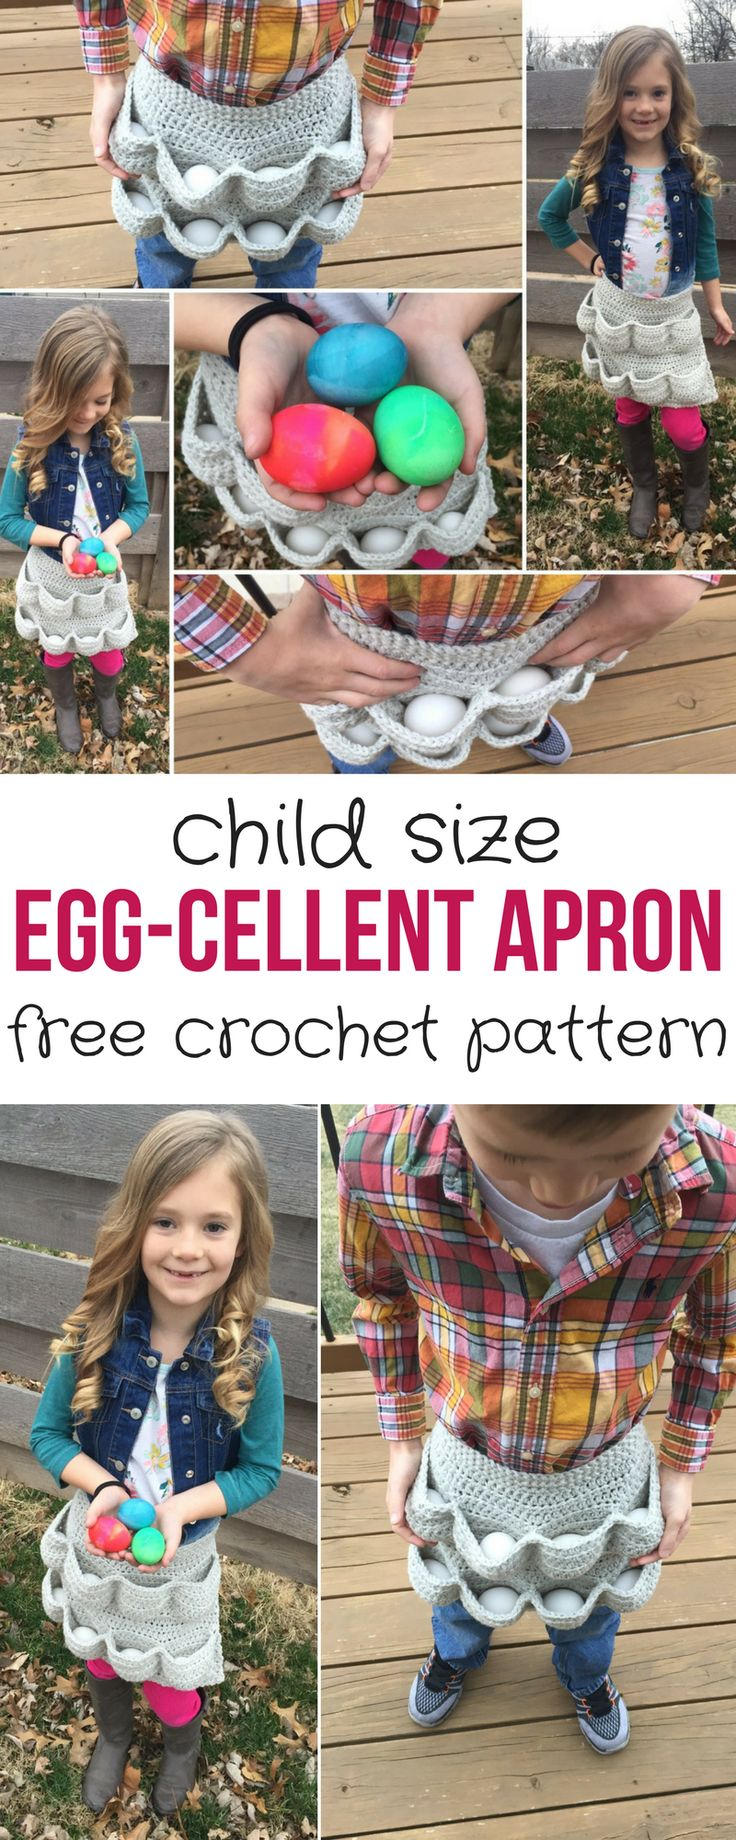 Egg-cellent Child SizeApron http://hearthookhome.com/egg-cellent-child-size-egg-gathering-apron/?utm_campaign=coschedule&utm_source=pinterest&utm_medium=Ashlea%20K%20-%20Heart%2C%20Hook%2C%20Home&utm_content=Egg-cellent%20Child%20Size%20Egg%20Gathering%20Apron